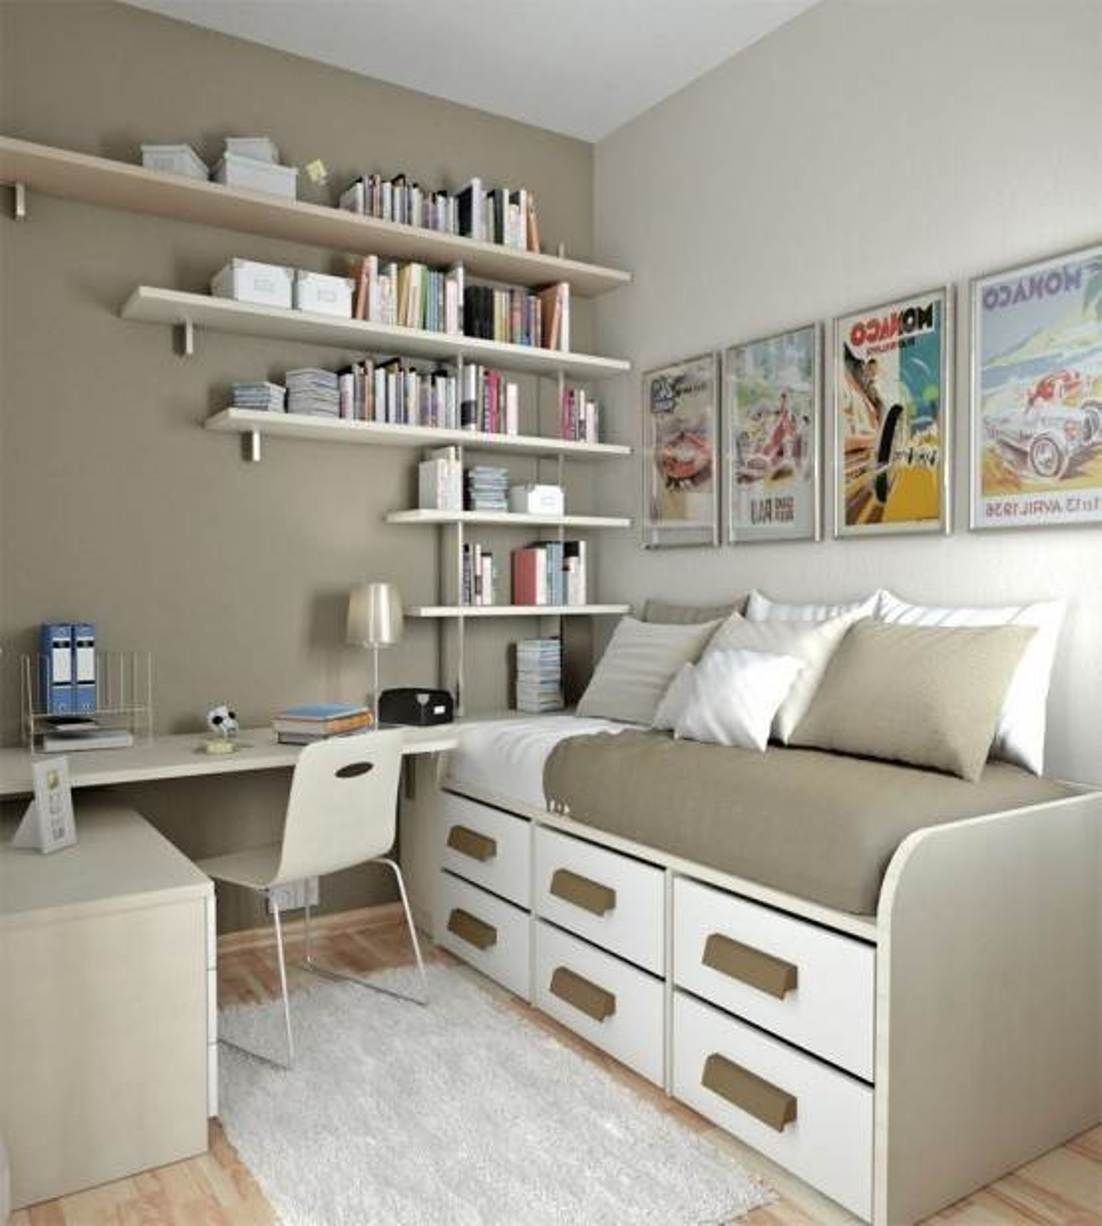 30 Clever Space-Saving Design Ideas For Small Homes | Space saving ...